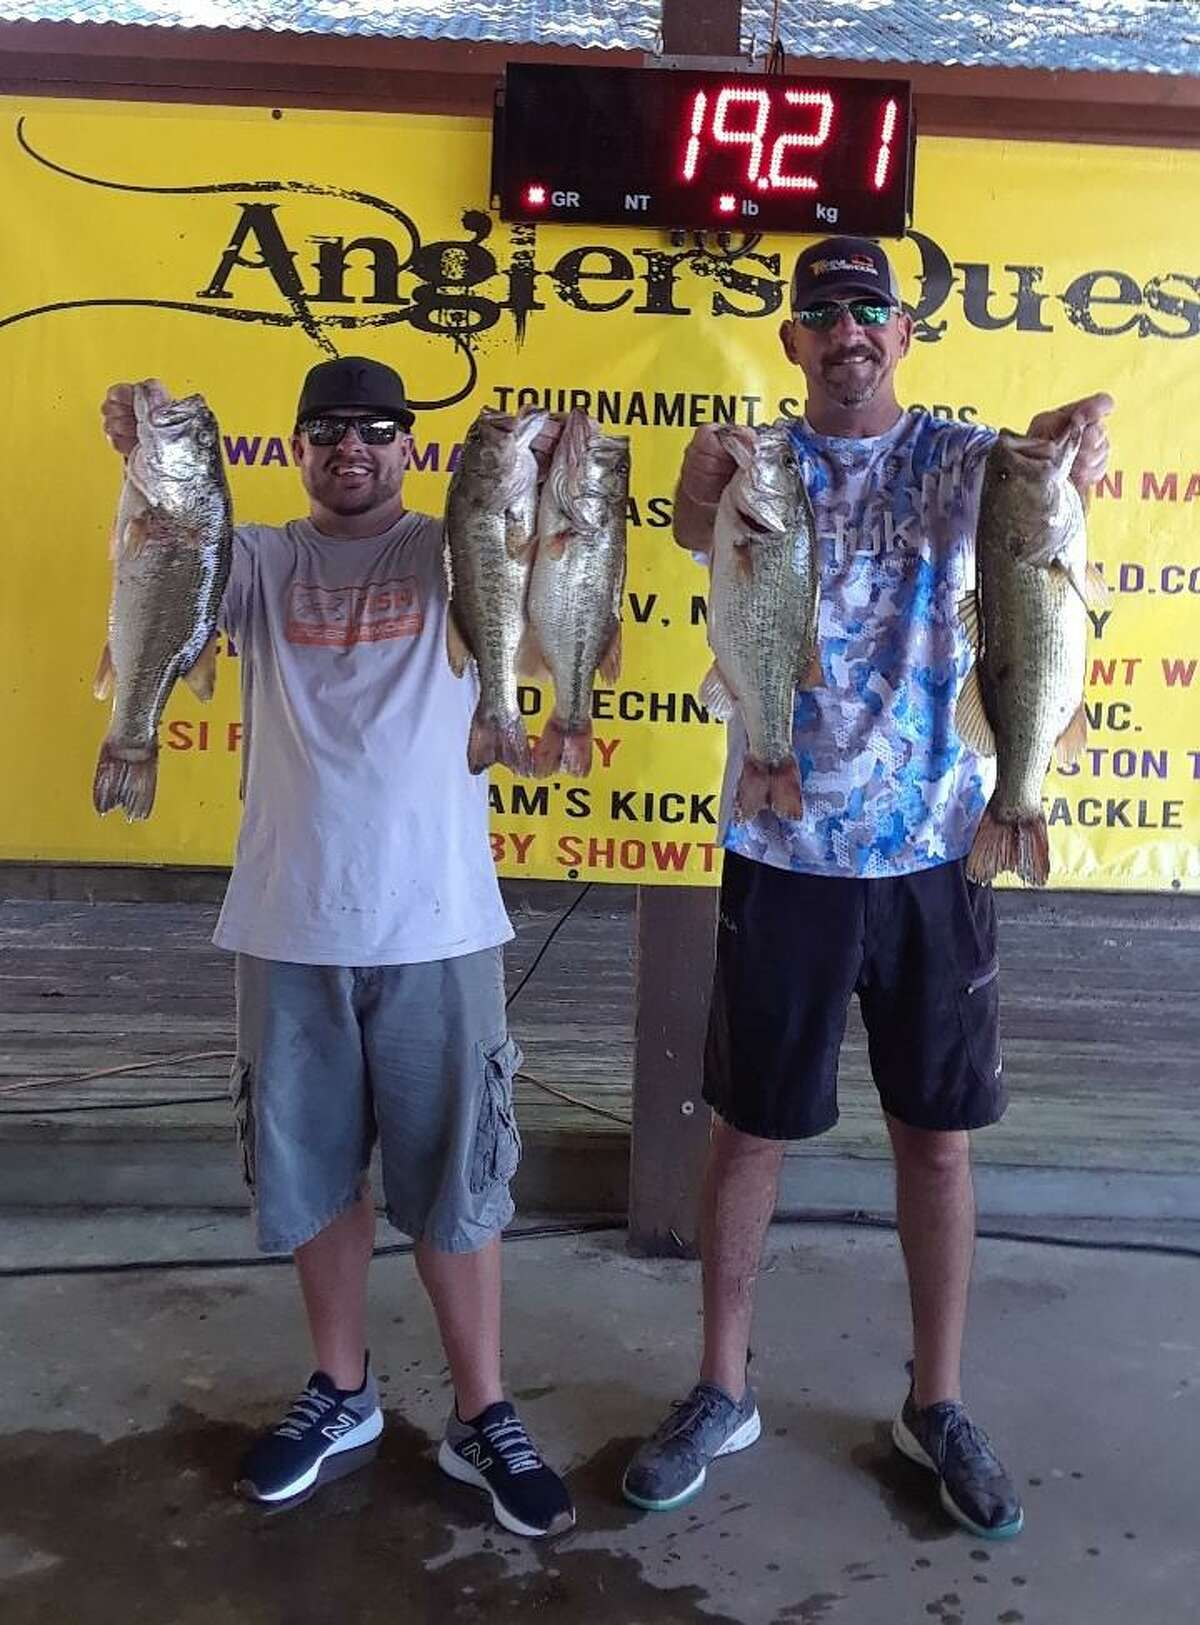 Ty Russell and Matt Russell came in second place in the Anglers Quest Team Team Tournament #6 with a total weight of 19.21 pounds.